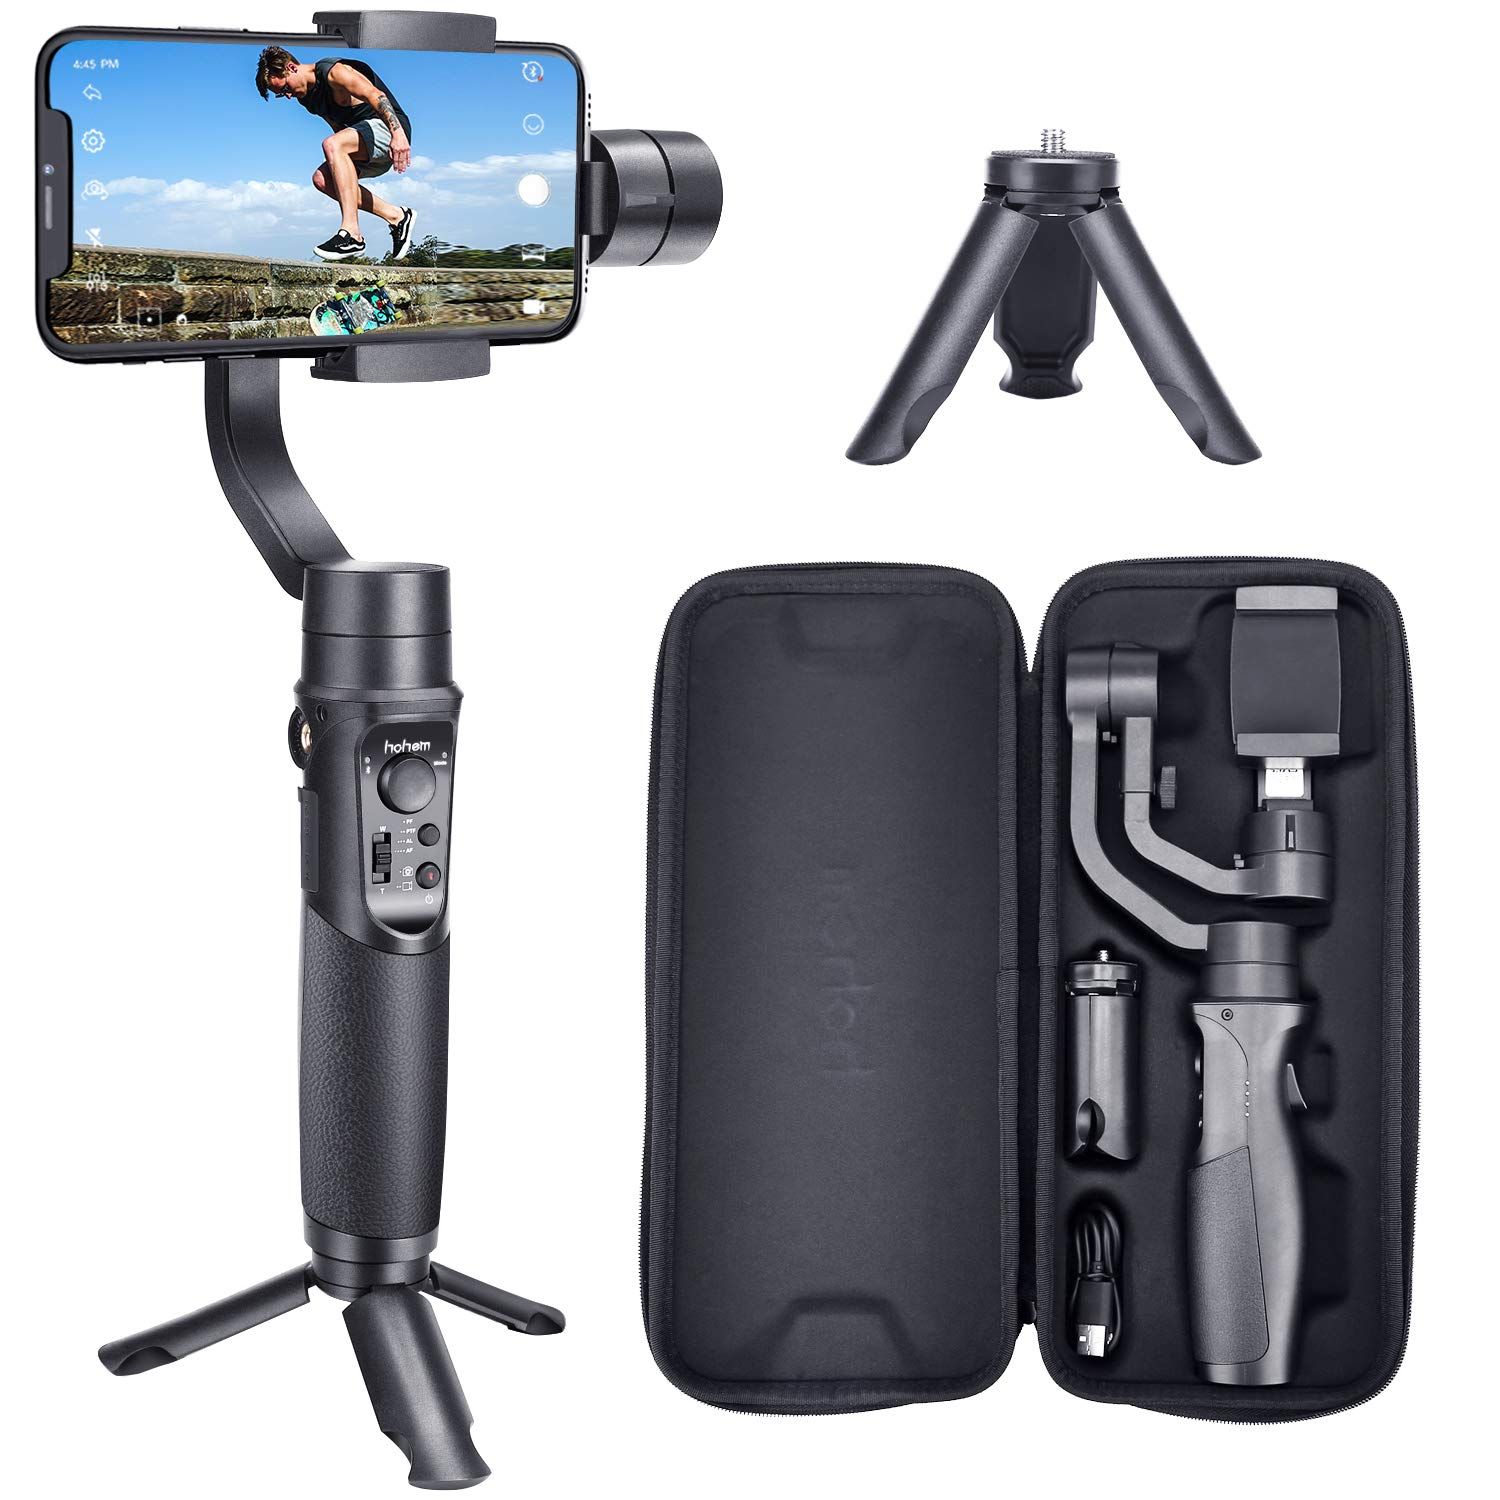 Hohem Smartphone Gimbal Stabilizer 3-Axis Handheld iPhone stabilizer for Xs Max Xr X 8 Plus 7 6 iPhone Gimbal Stabilizer iPhone gimble for Galaxy S9+ S9 S8+ S8 S7 S6 Q2 Edge (iSteady Mobile Plus) by Hohem